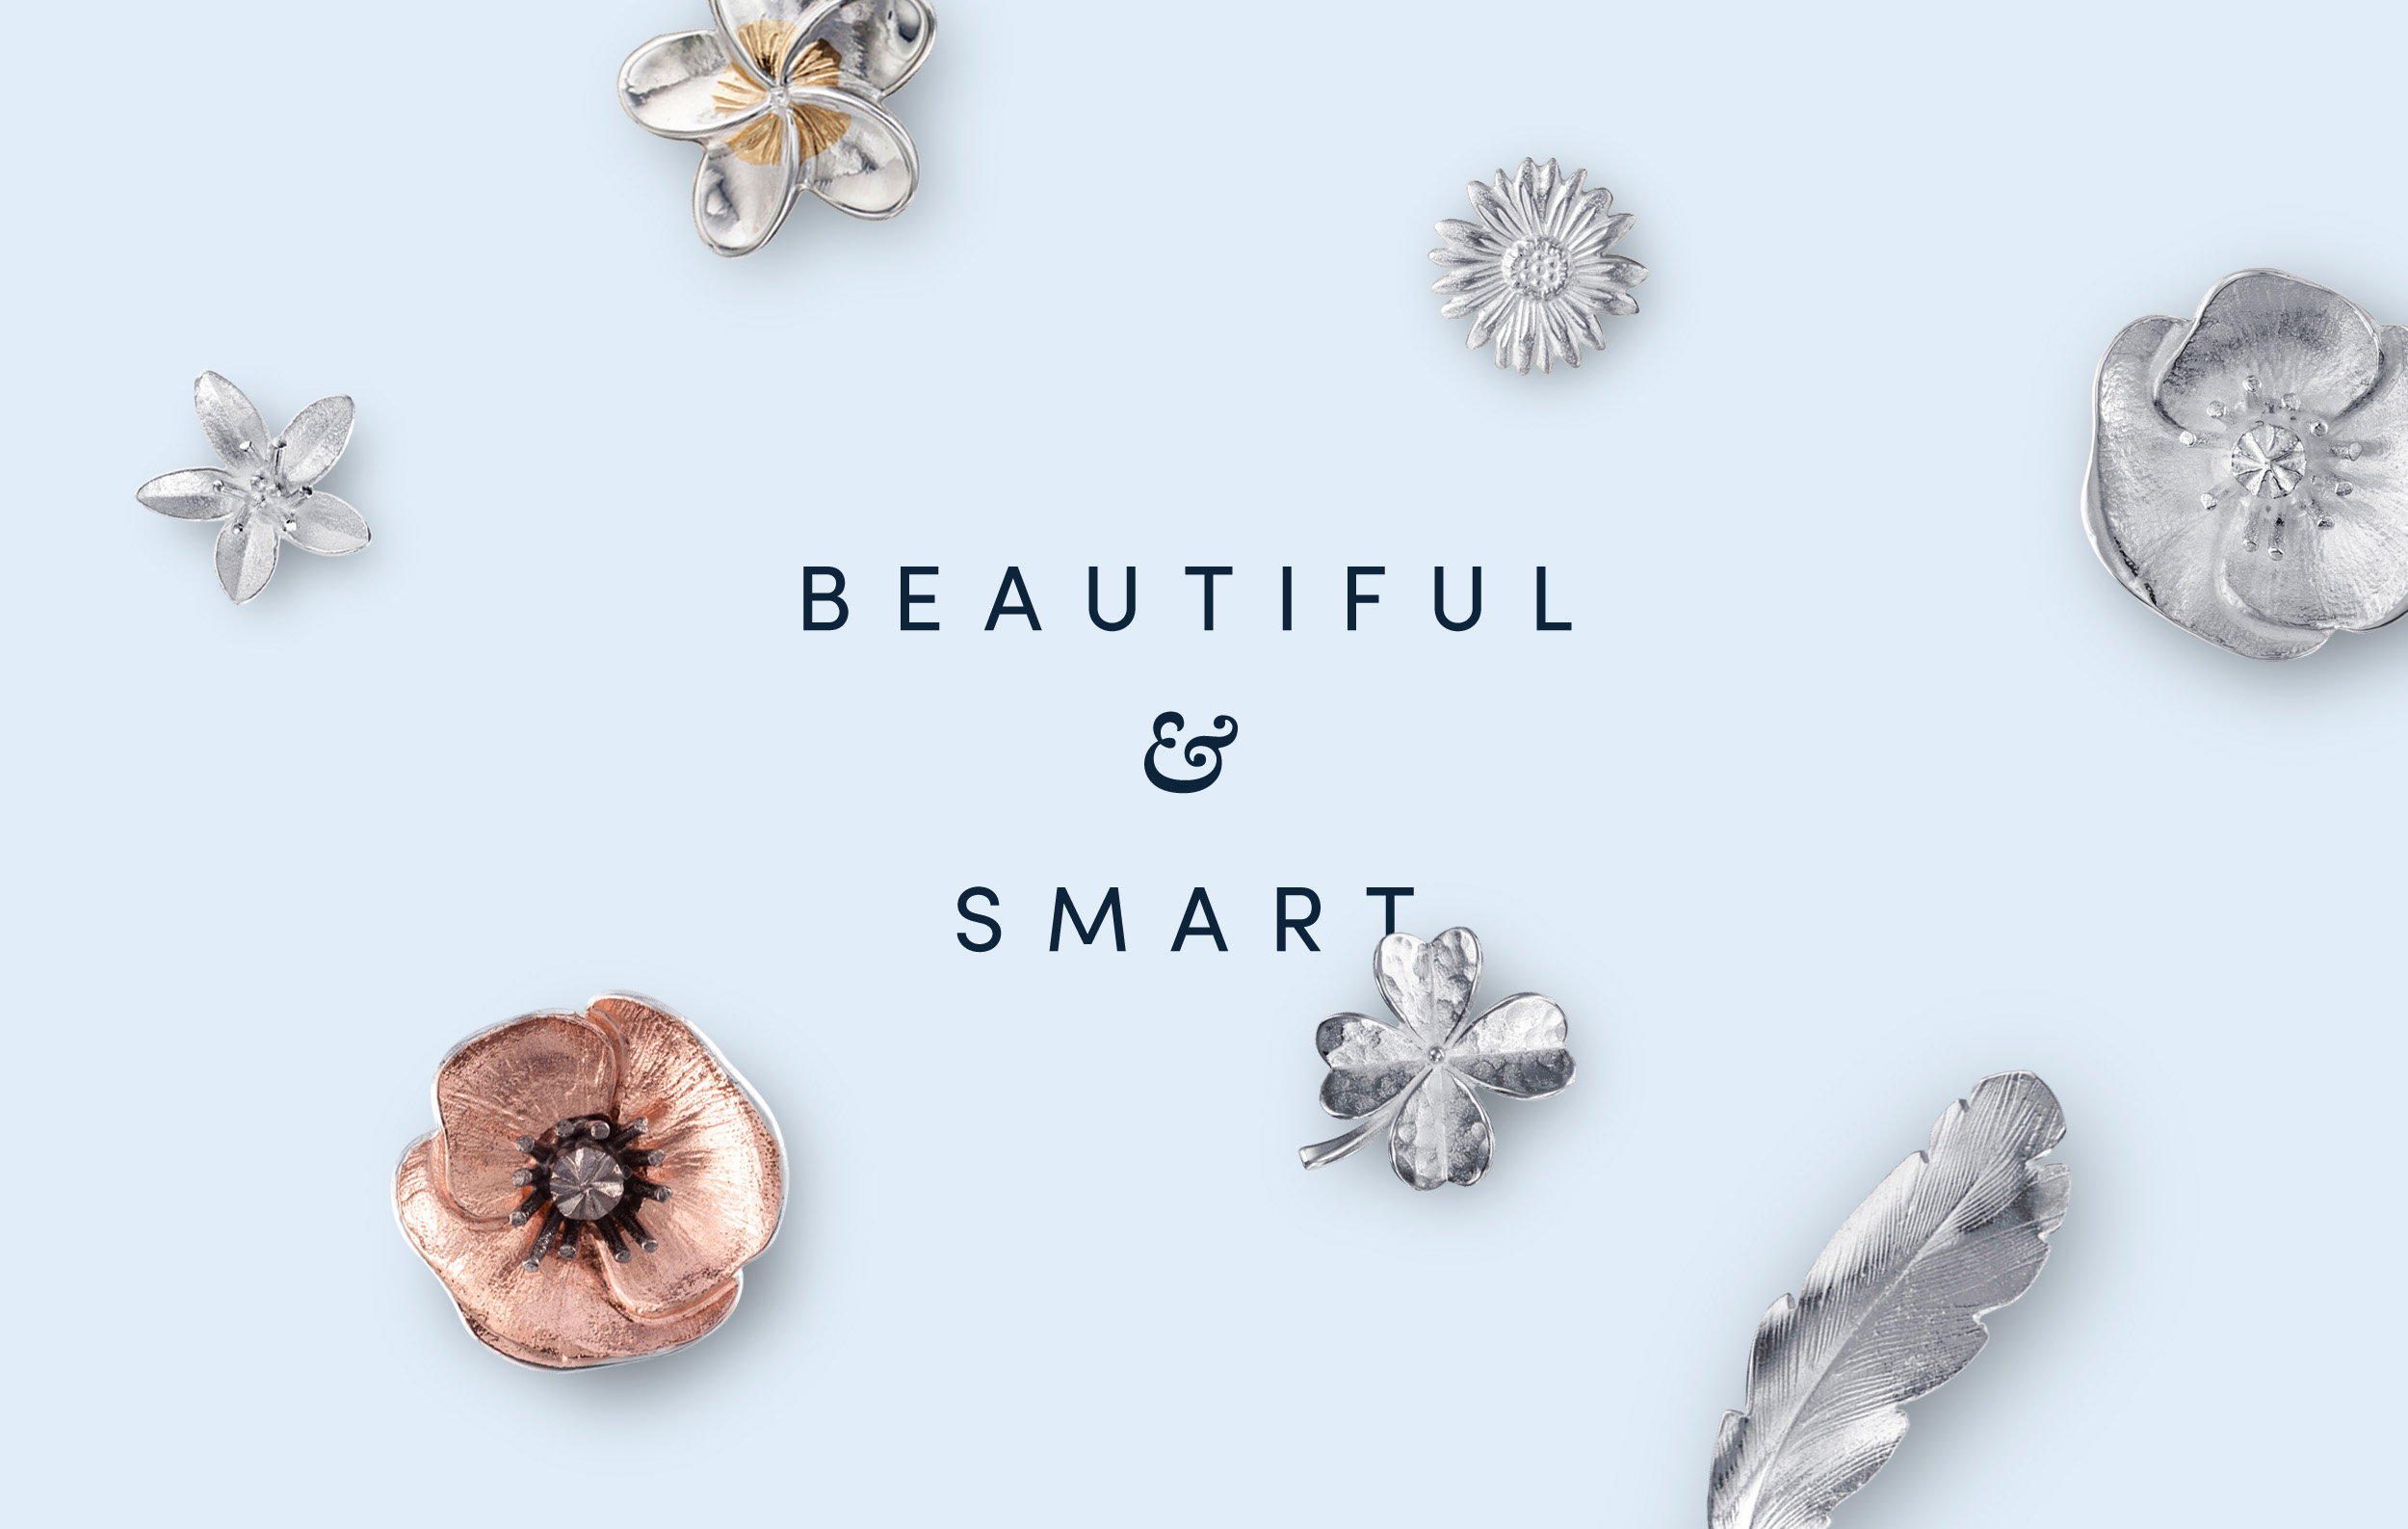 MOS_Beautiful_Smart_03